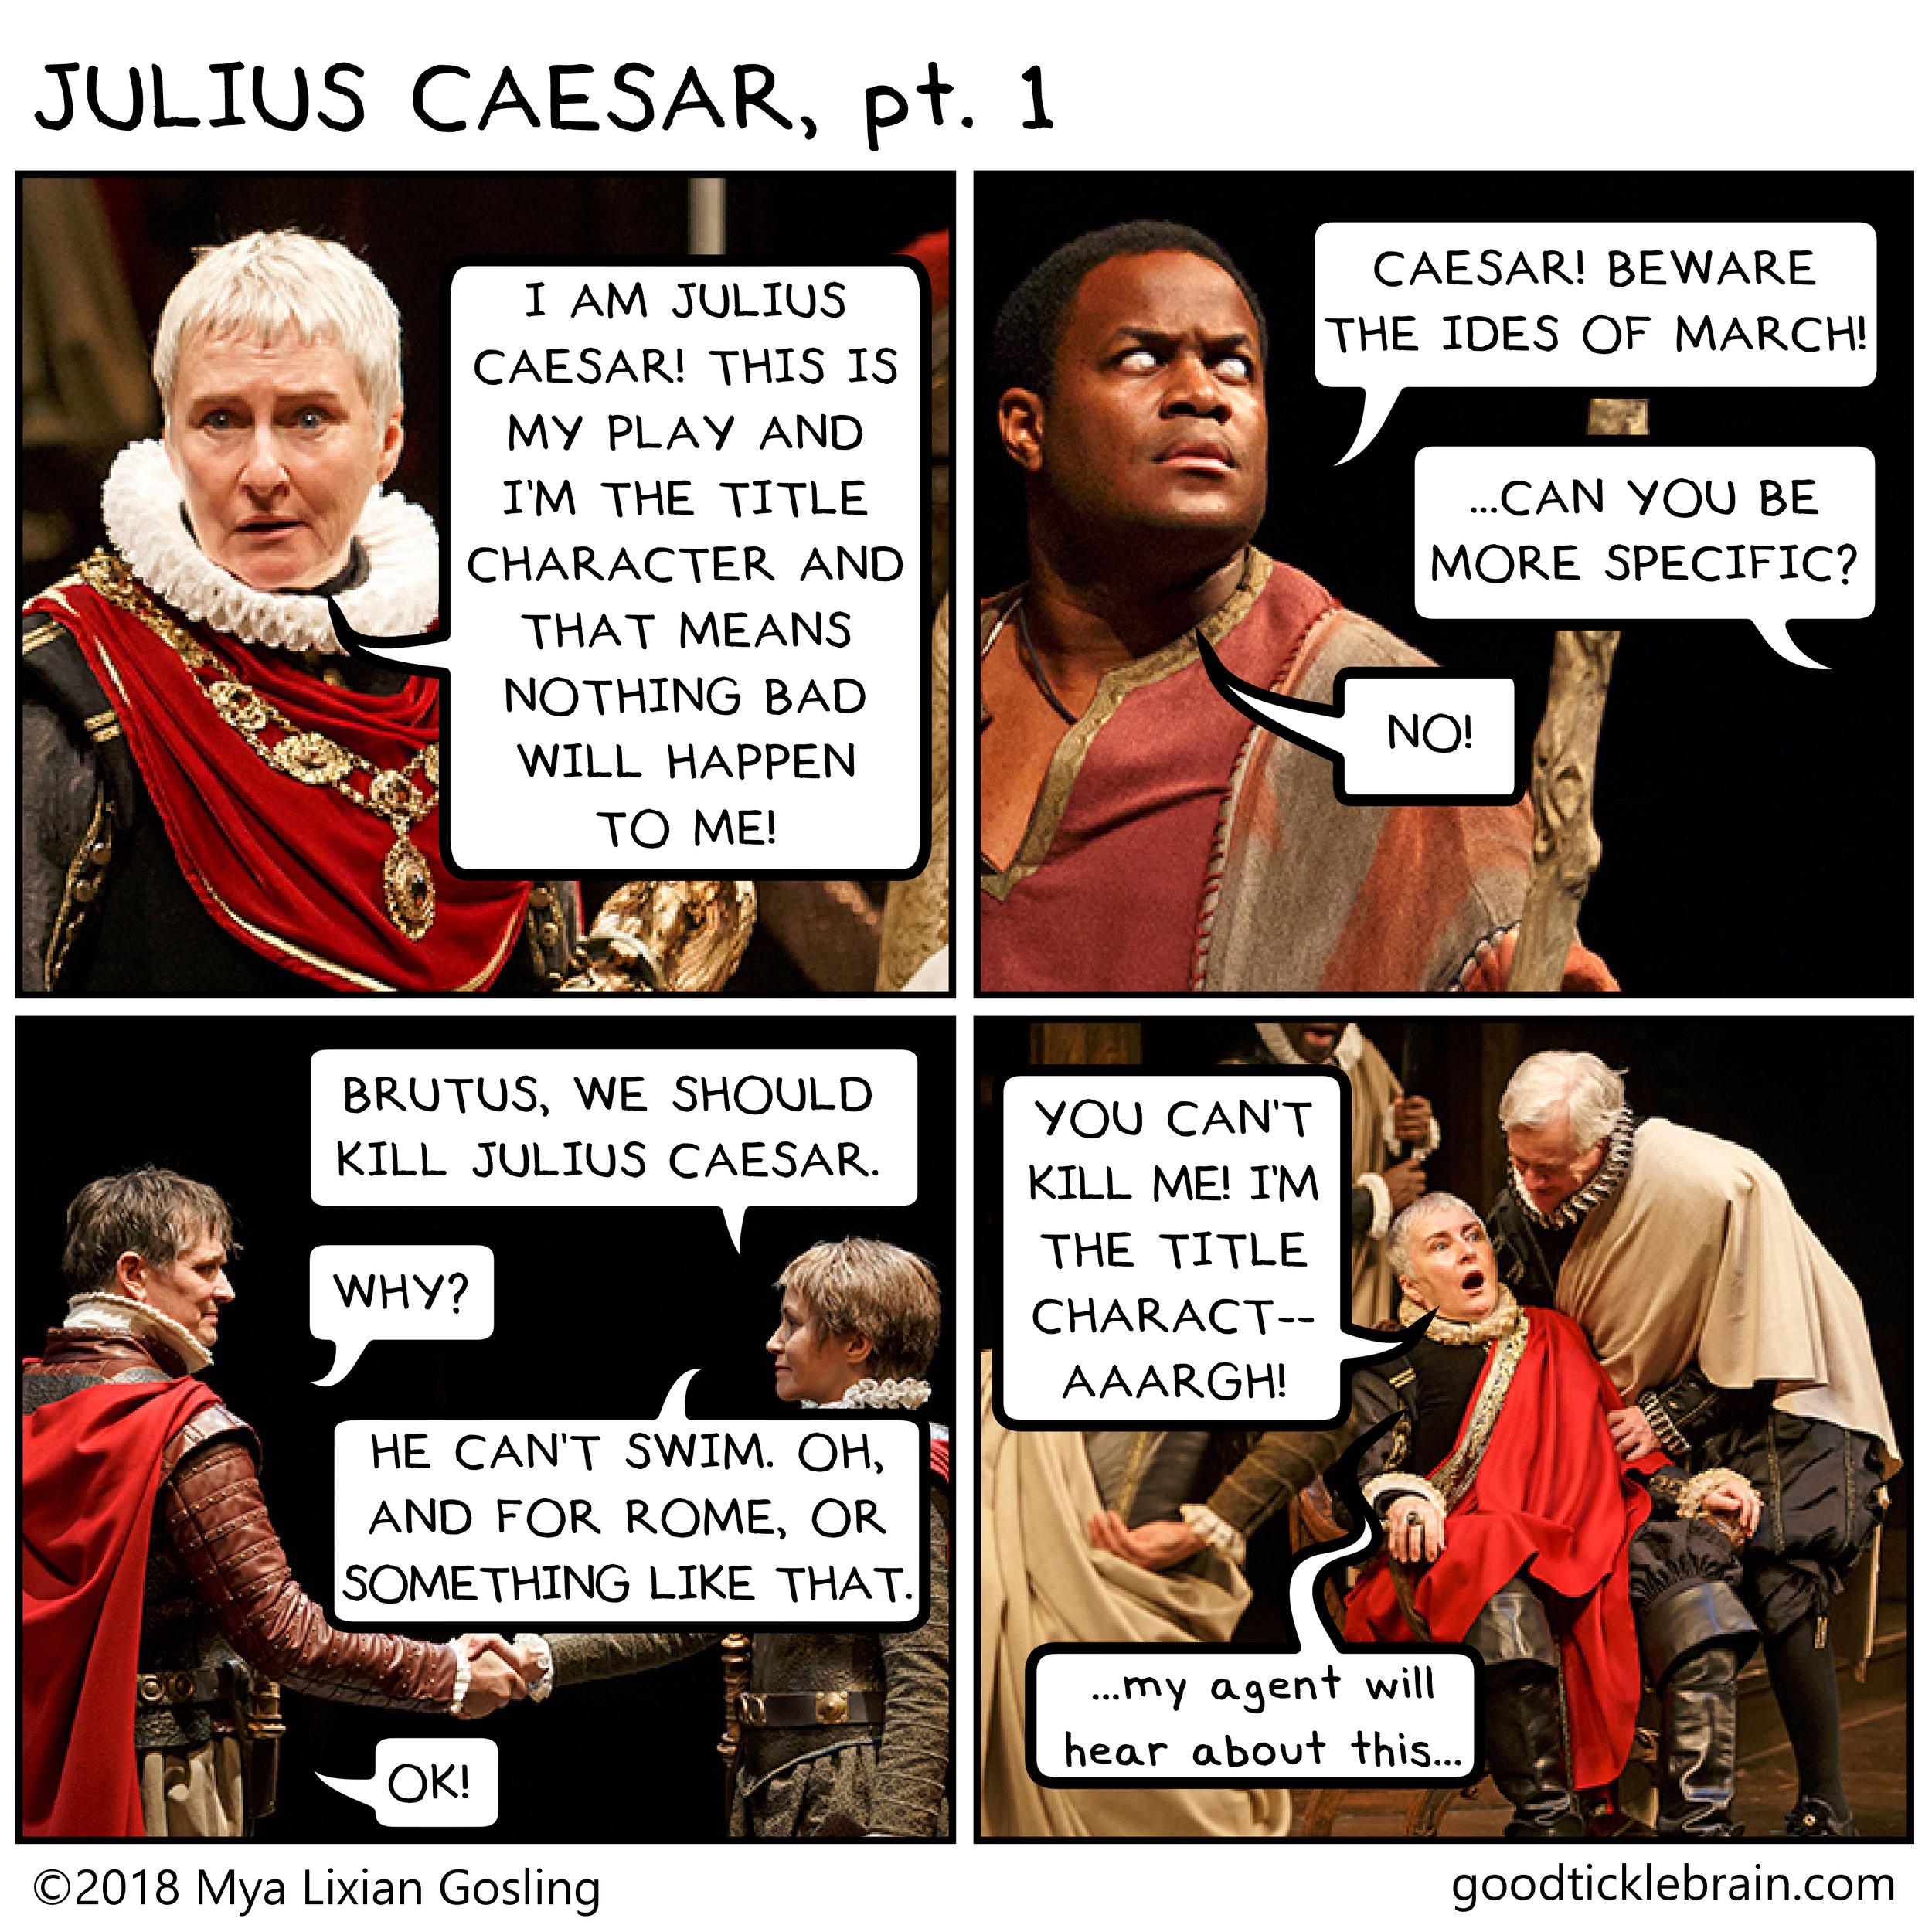 2018PhotoComic-JuliusCaesar-01.jpg